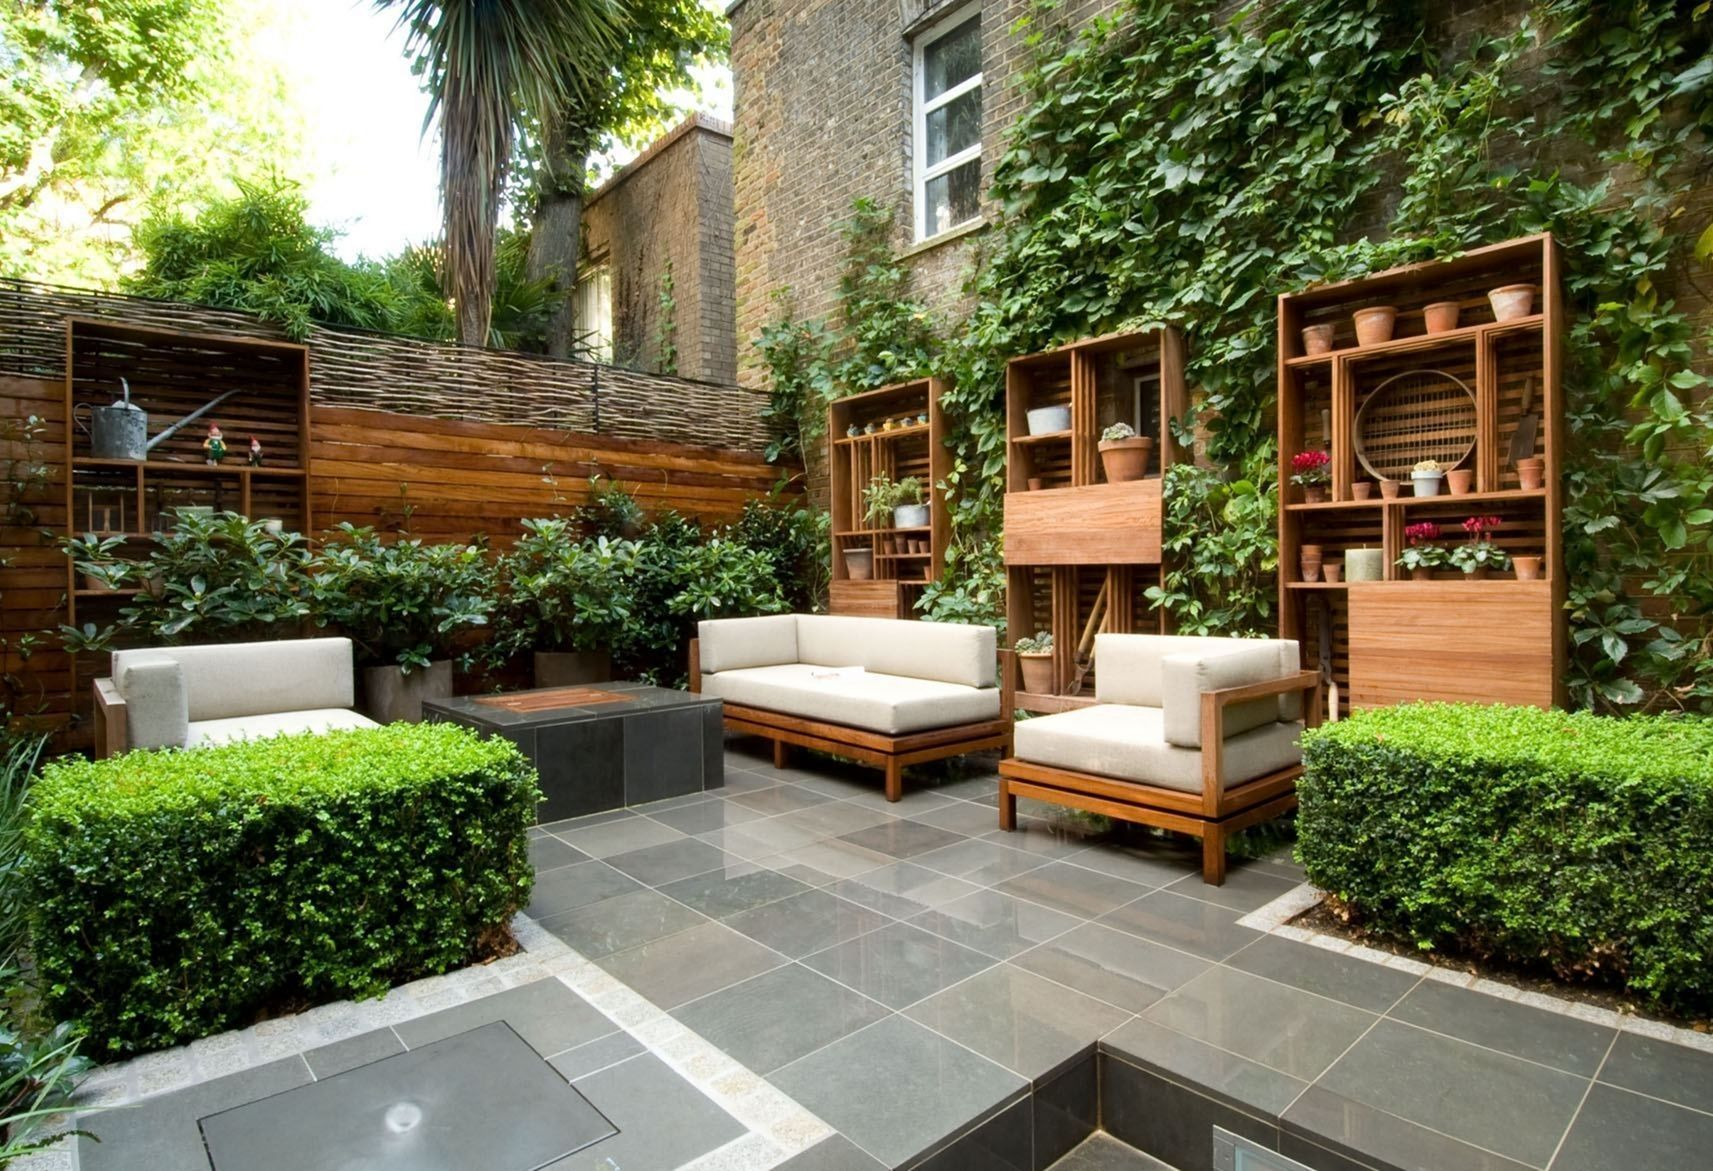 35 Modern Landscape Design Ideas For Minimalist Courtyard ...